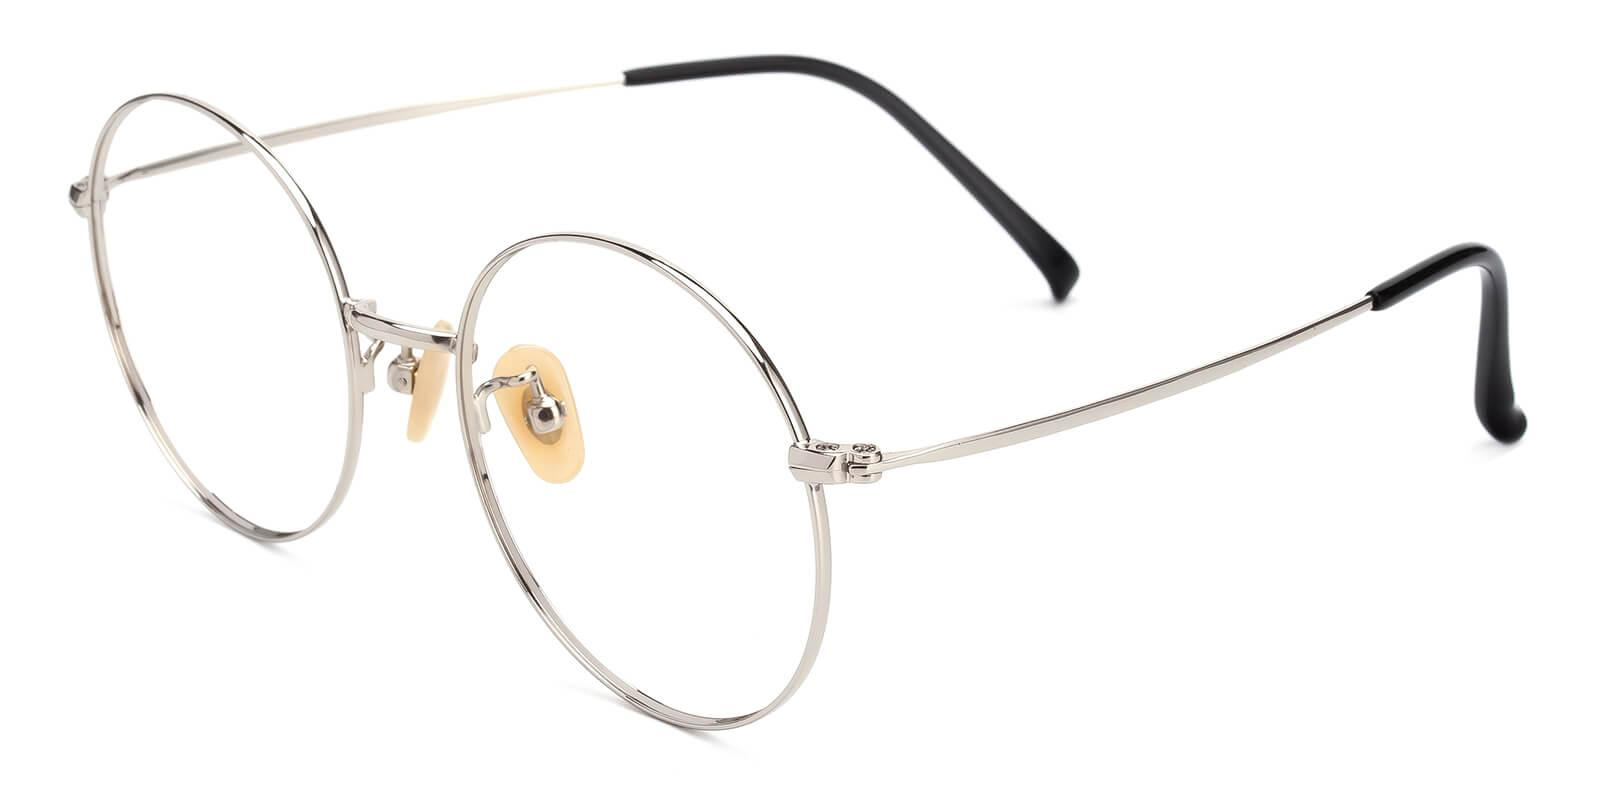 Theenity-Silver-Round-Titanium-Eyeglasses-additional1